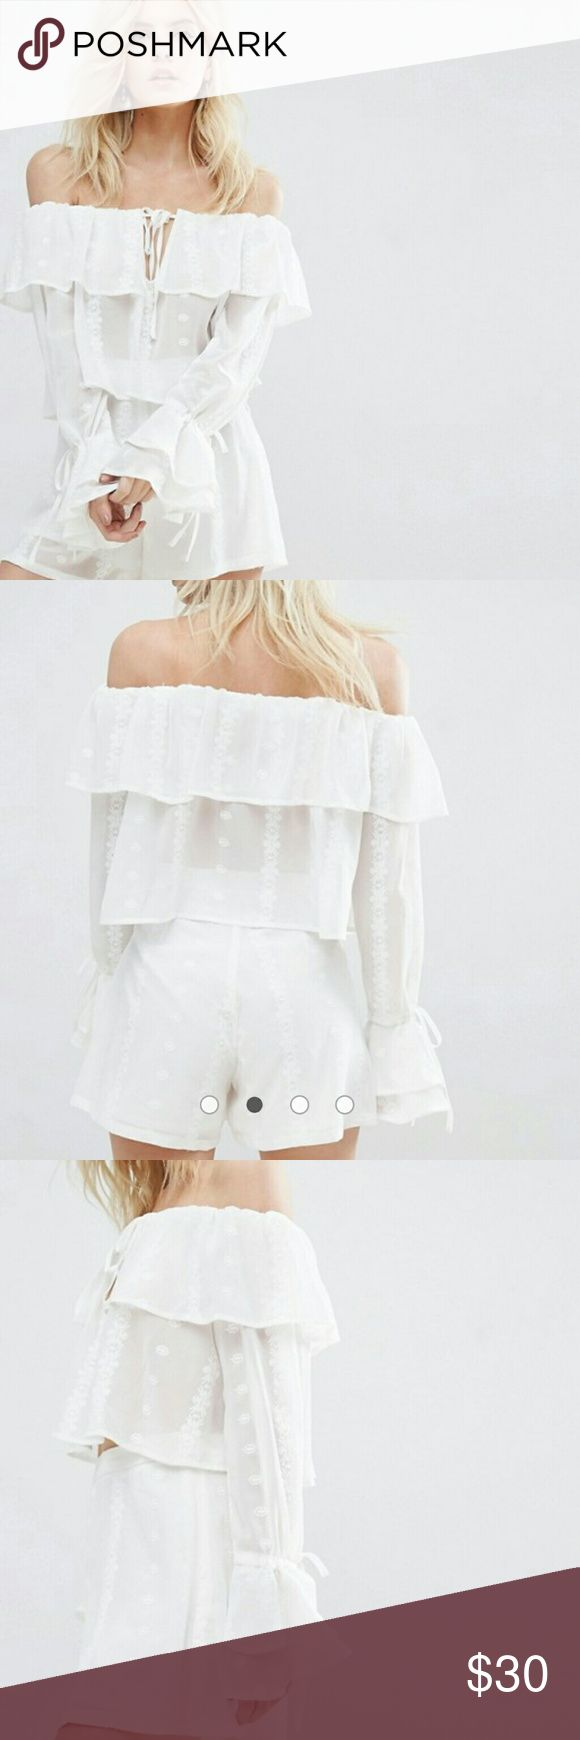 Misguided petite bardot frill embroidered top Super cute sheer top in white. Has embroidery and off shoulder fit. Bell sleeves! Size 0 nwt misguided Tops Blouses